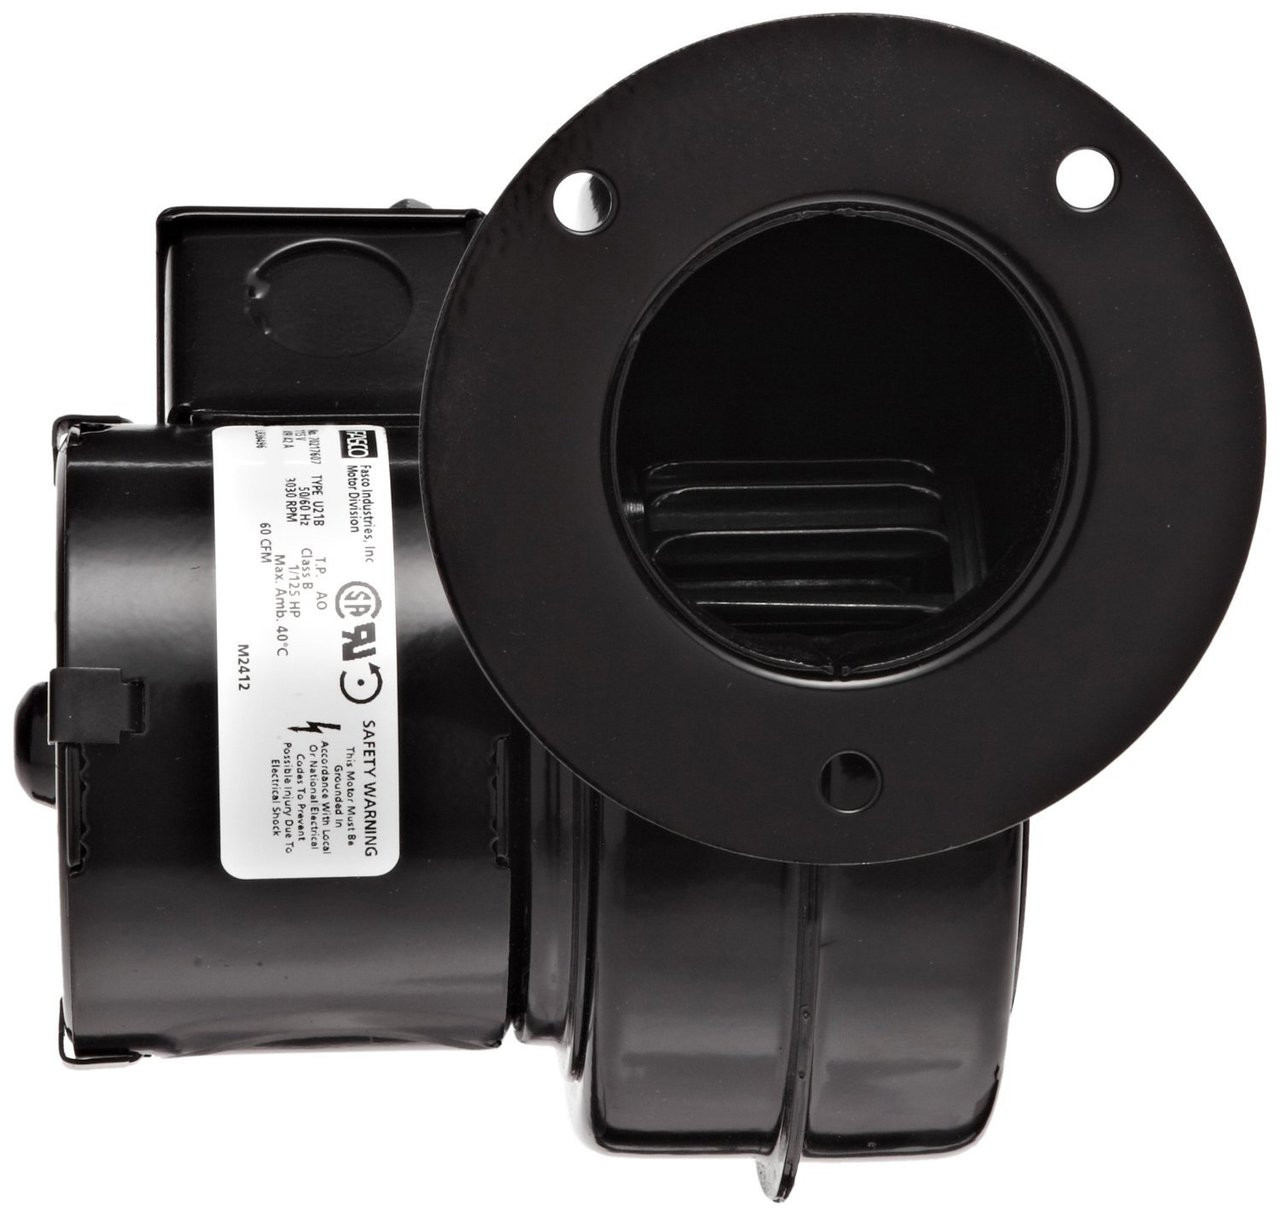 50747D401__05424.1435071110.1280.1280?c=2 fasco electric blowers for woodstoves, pellet stoves, firplaces